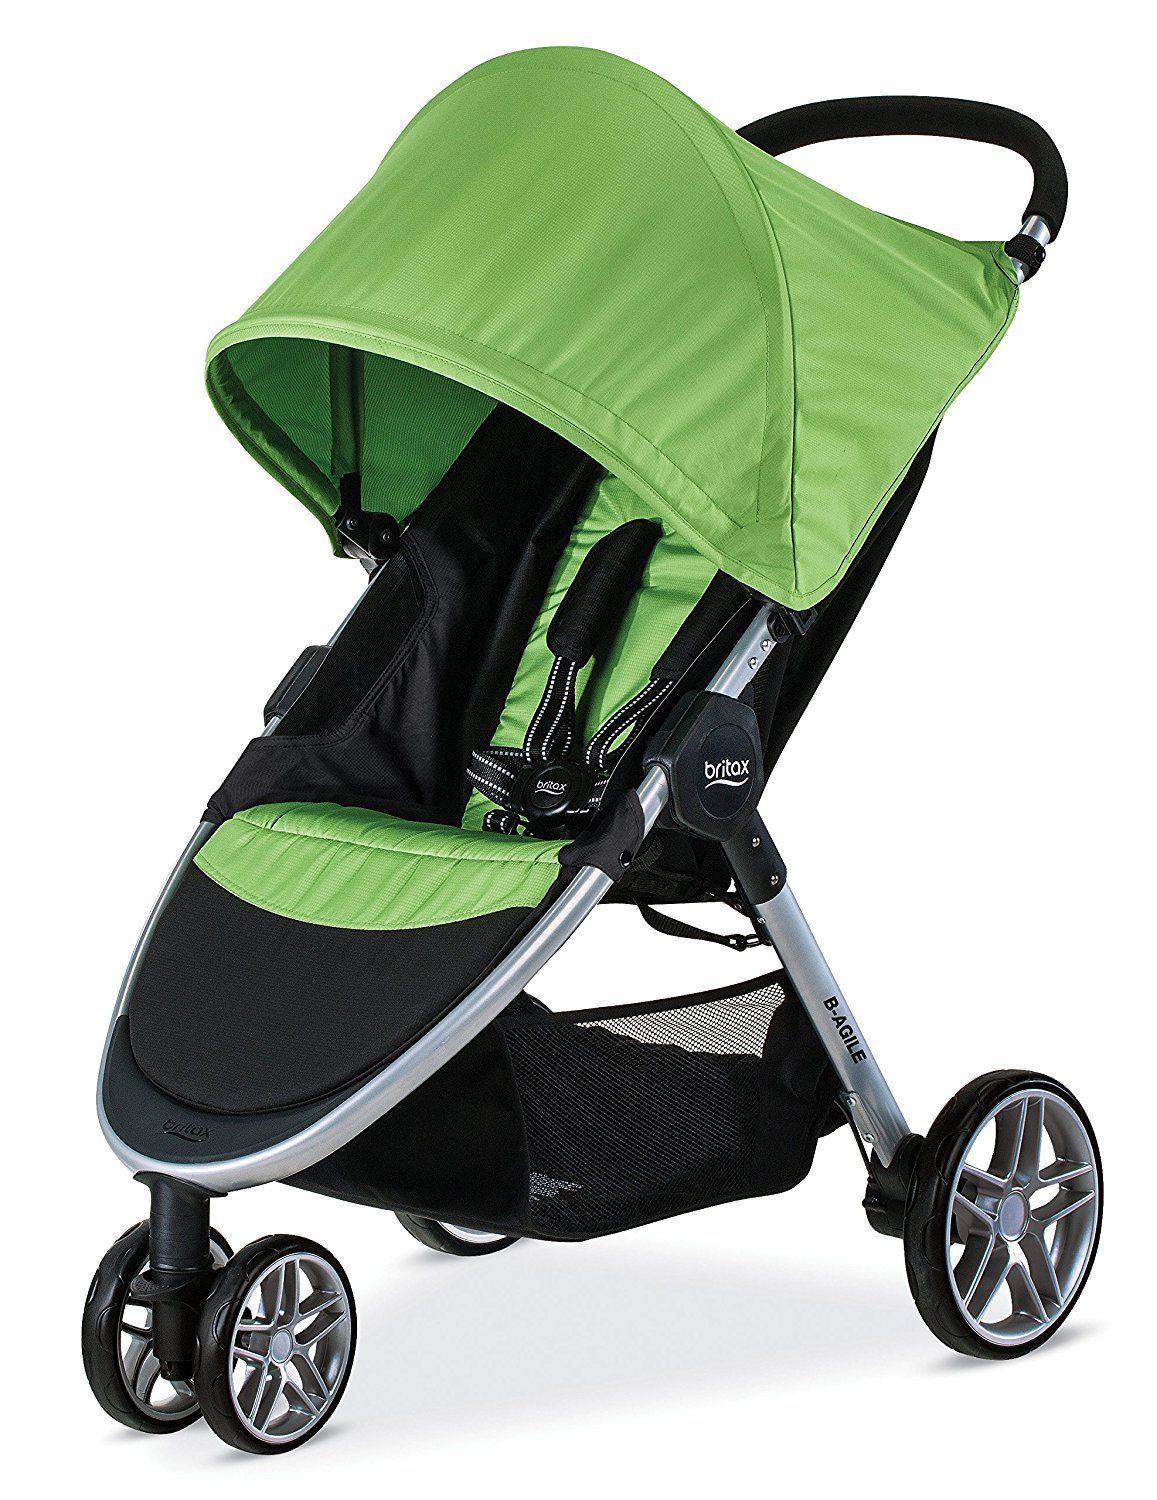 Best Twin Pram On The Market In 2020 Top 5 Models Reviewed